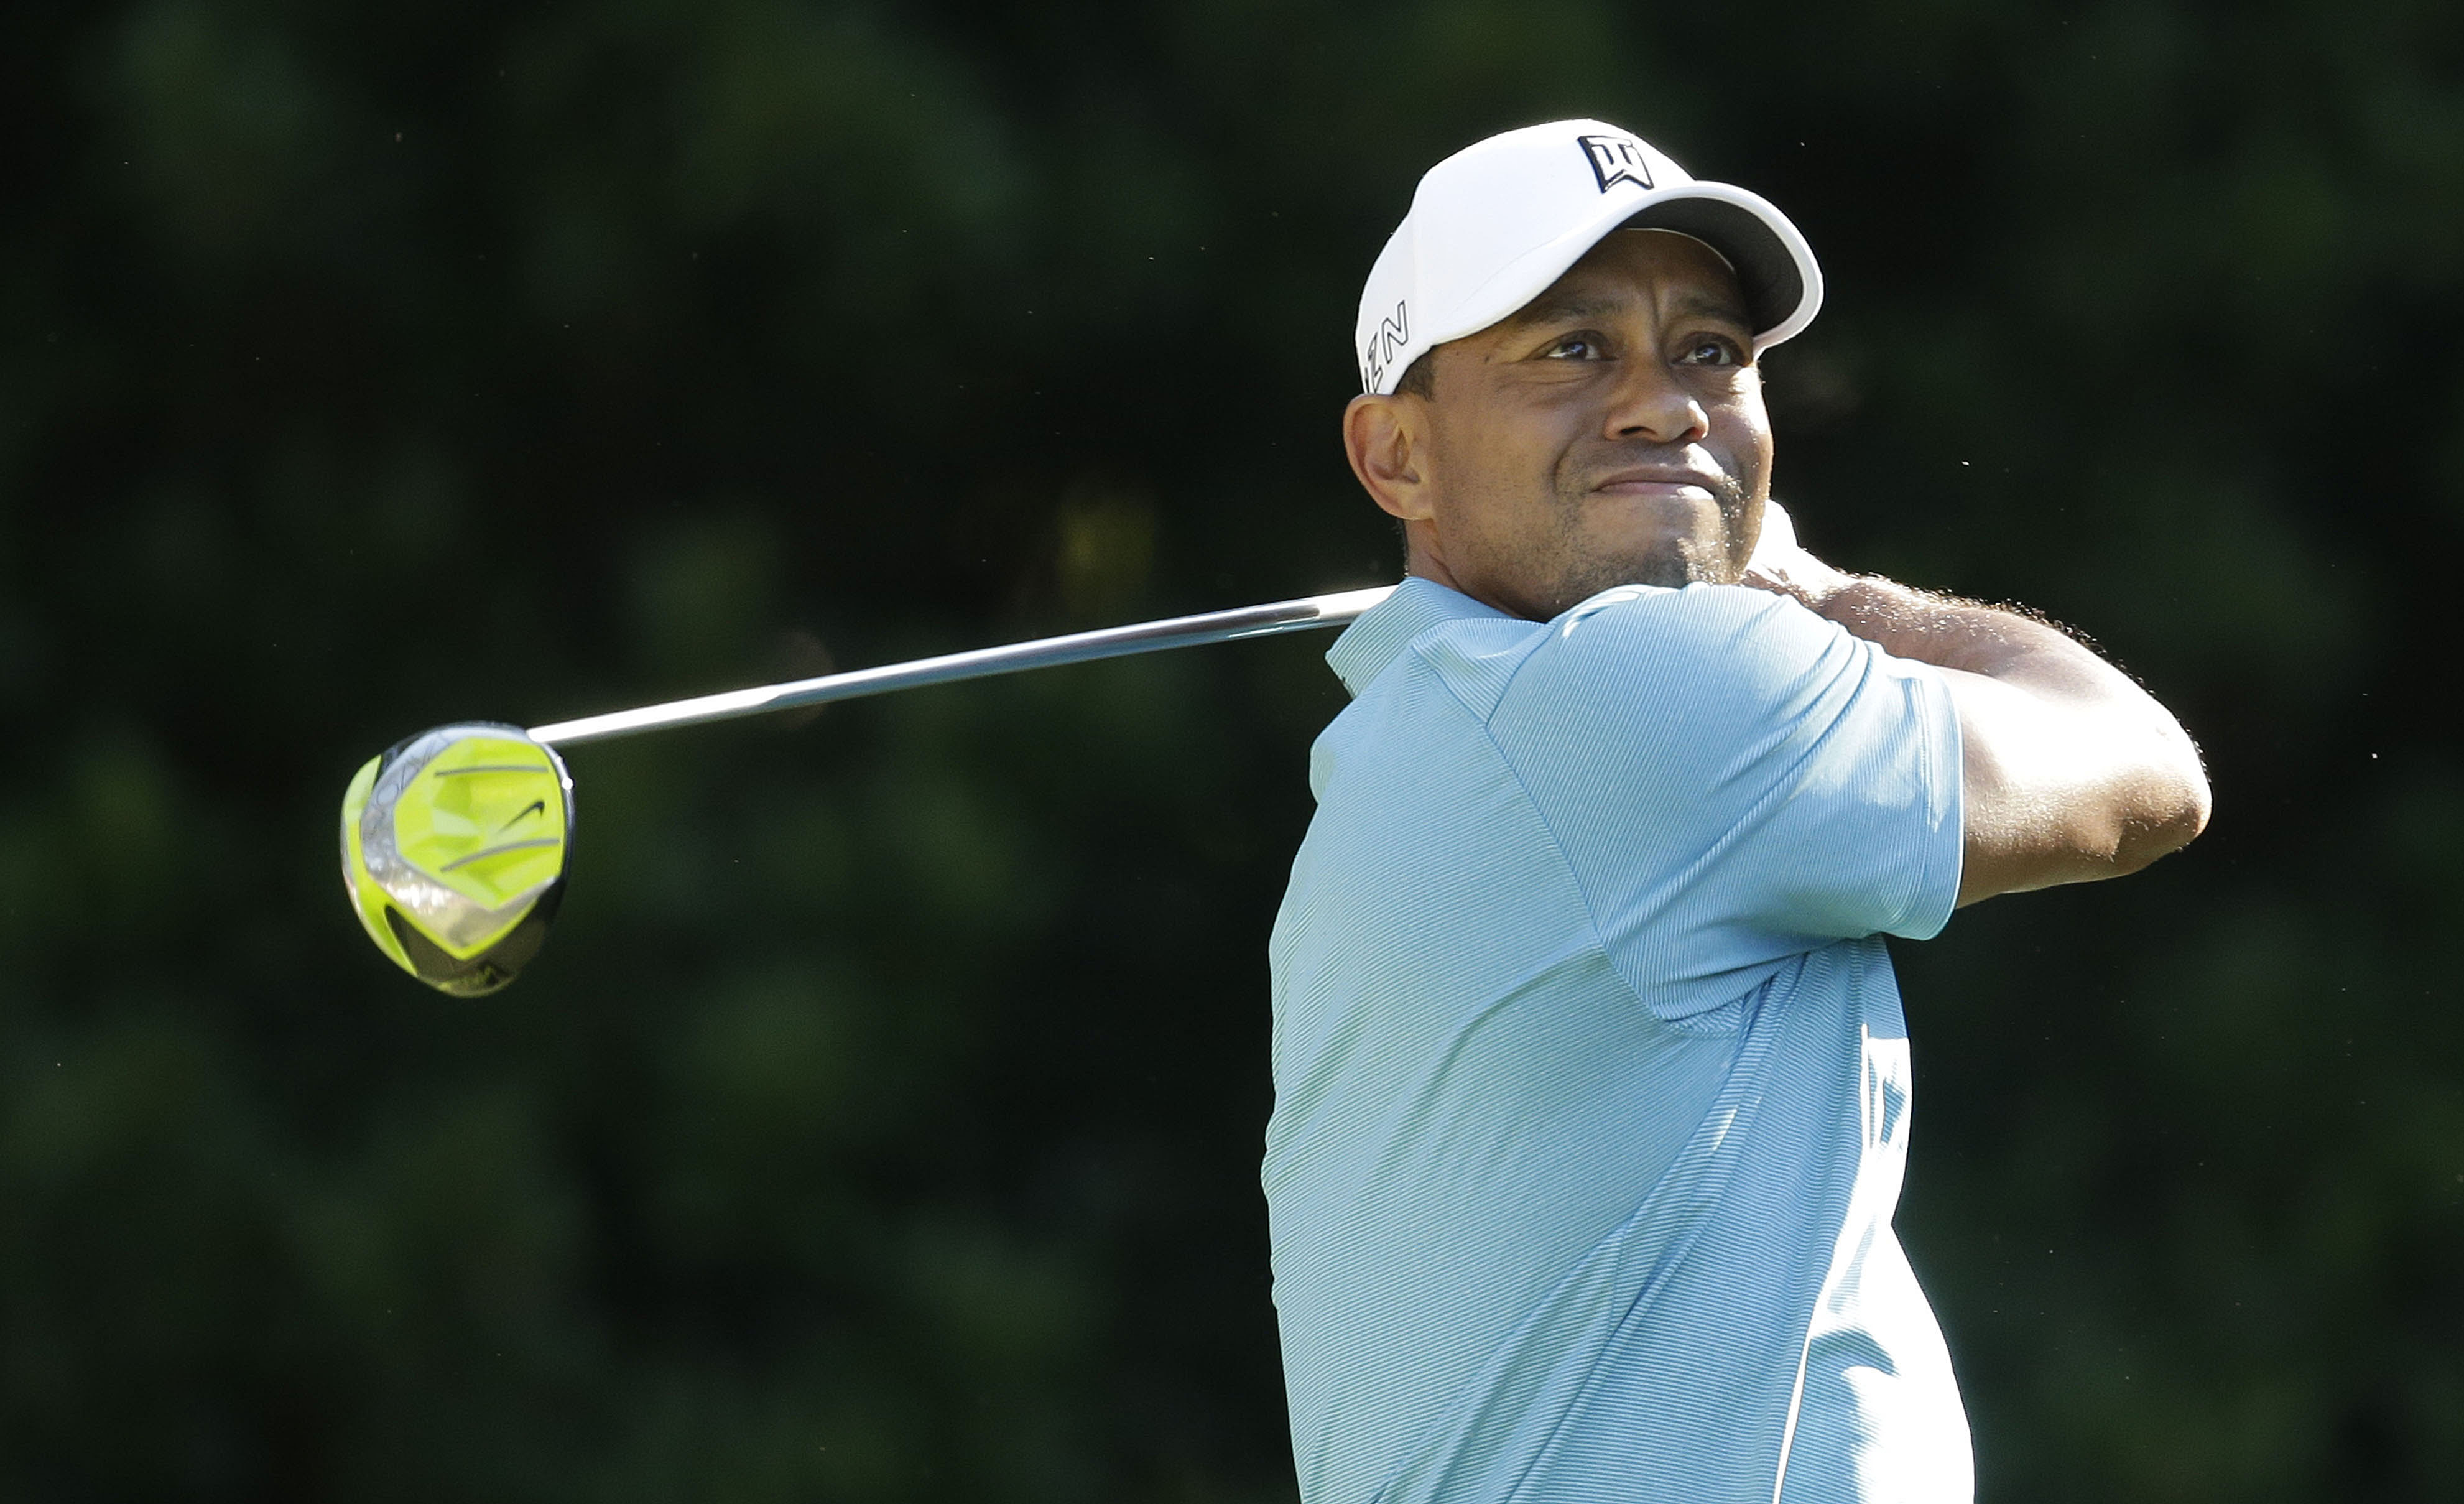 Tiger Woods follows his shot from the 11th tee during the second round of The Players Championship golf tournament Friday, May 8, 2015, in Ponte Vedra Beach, Fla. (AP Photo/Lynne Sladky)